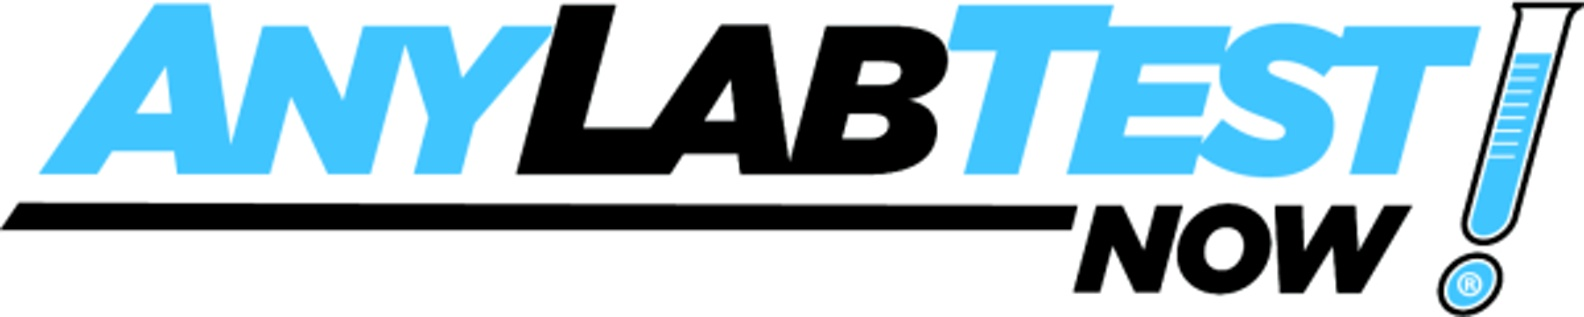 Any Lab Test Now - LAB TESTING ONLY - Thornton Logo